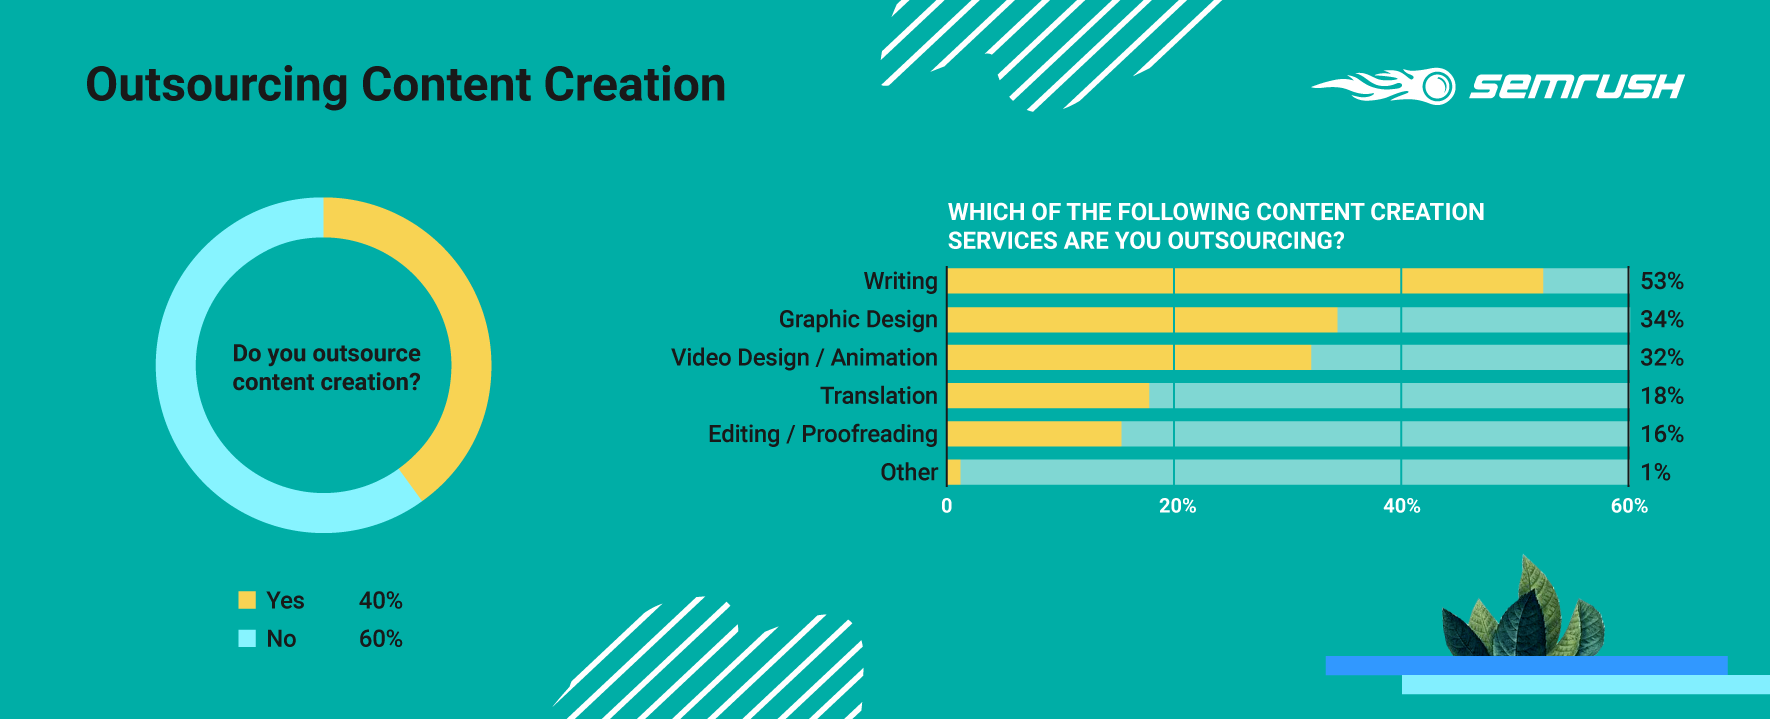 Outsourcing Content Creation Survey results